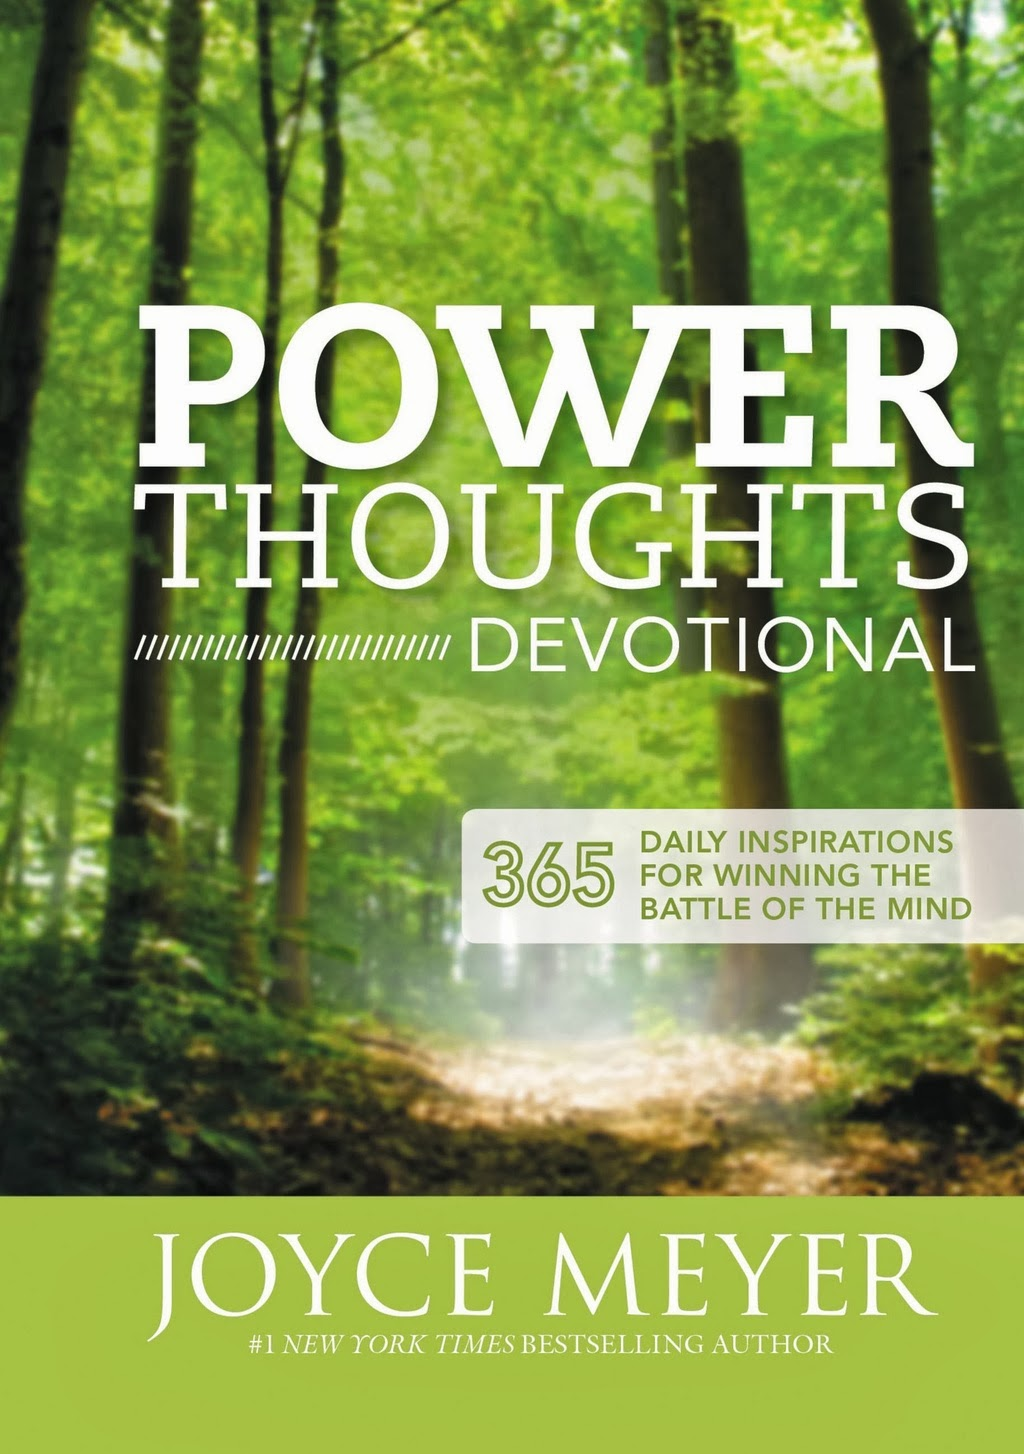 Power thoughts book review